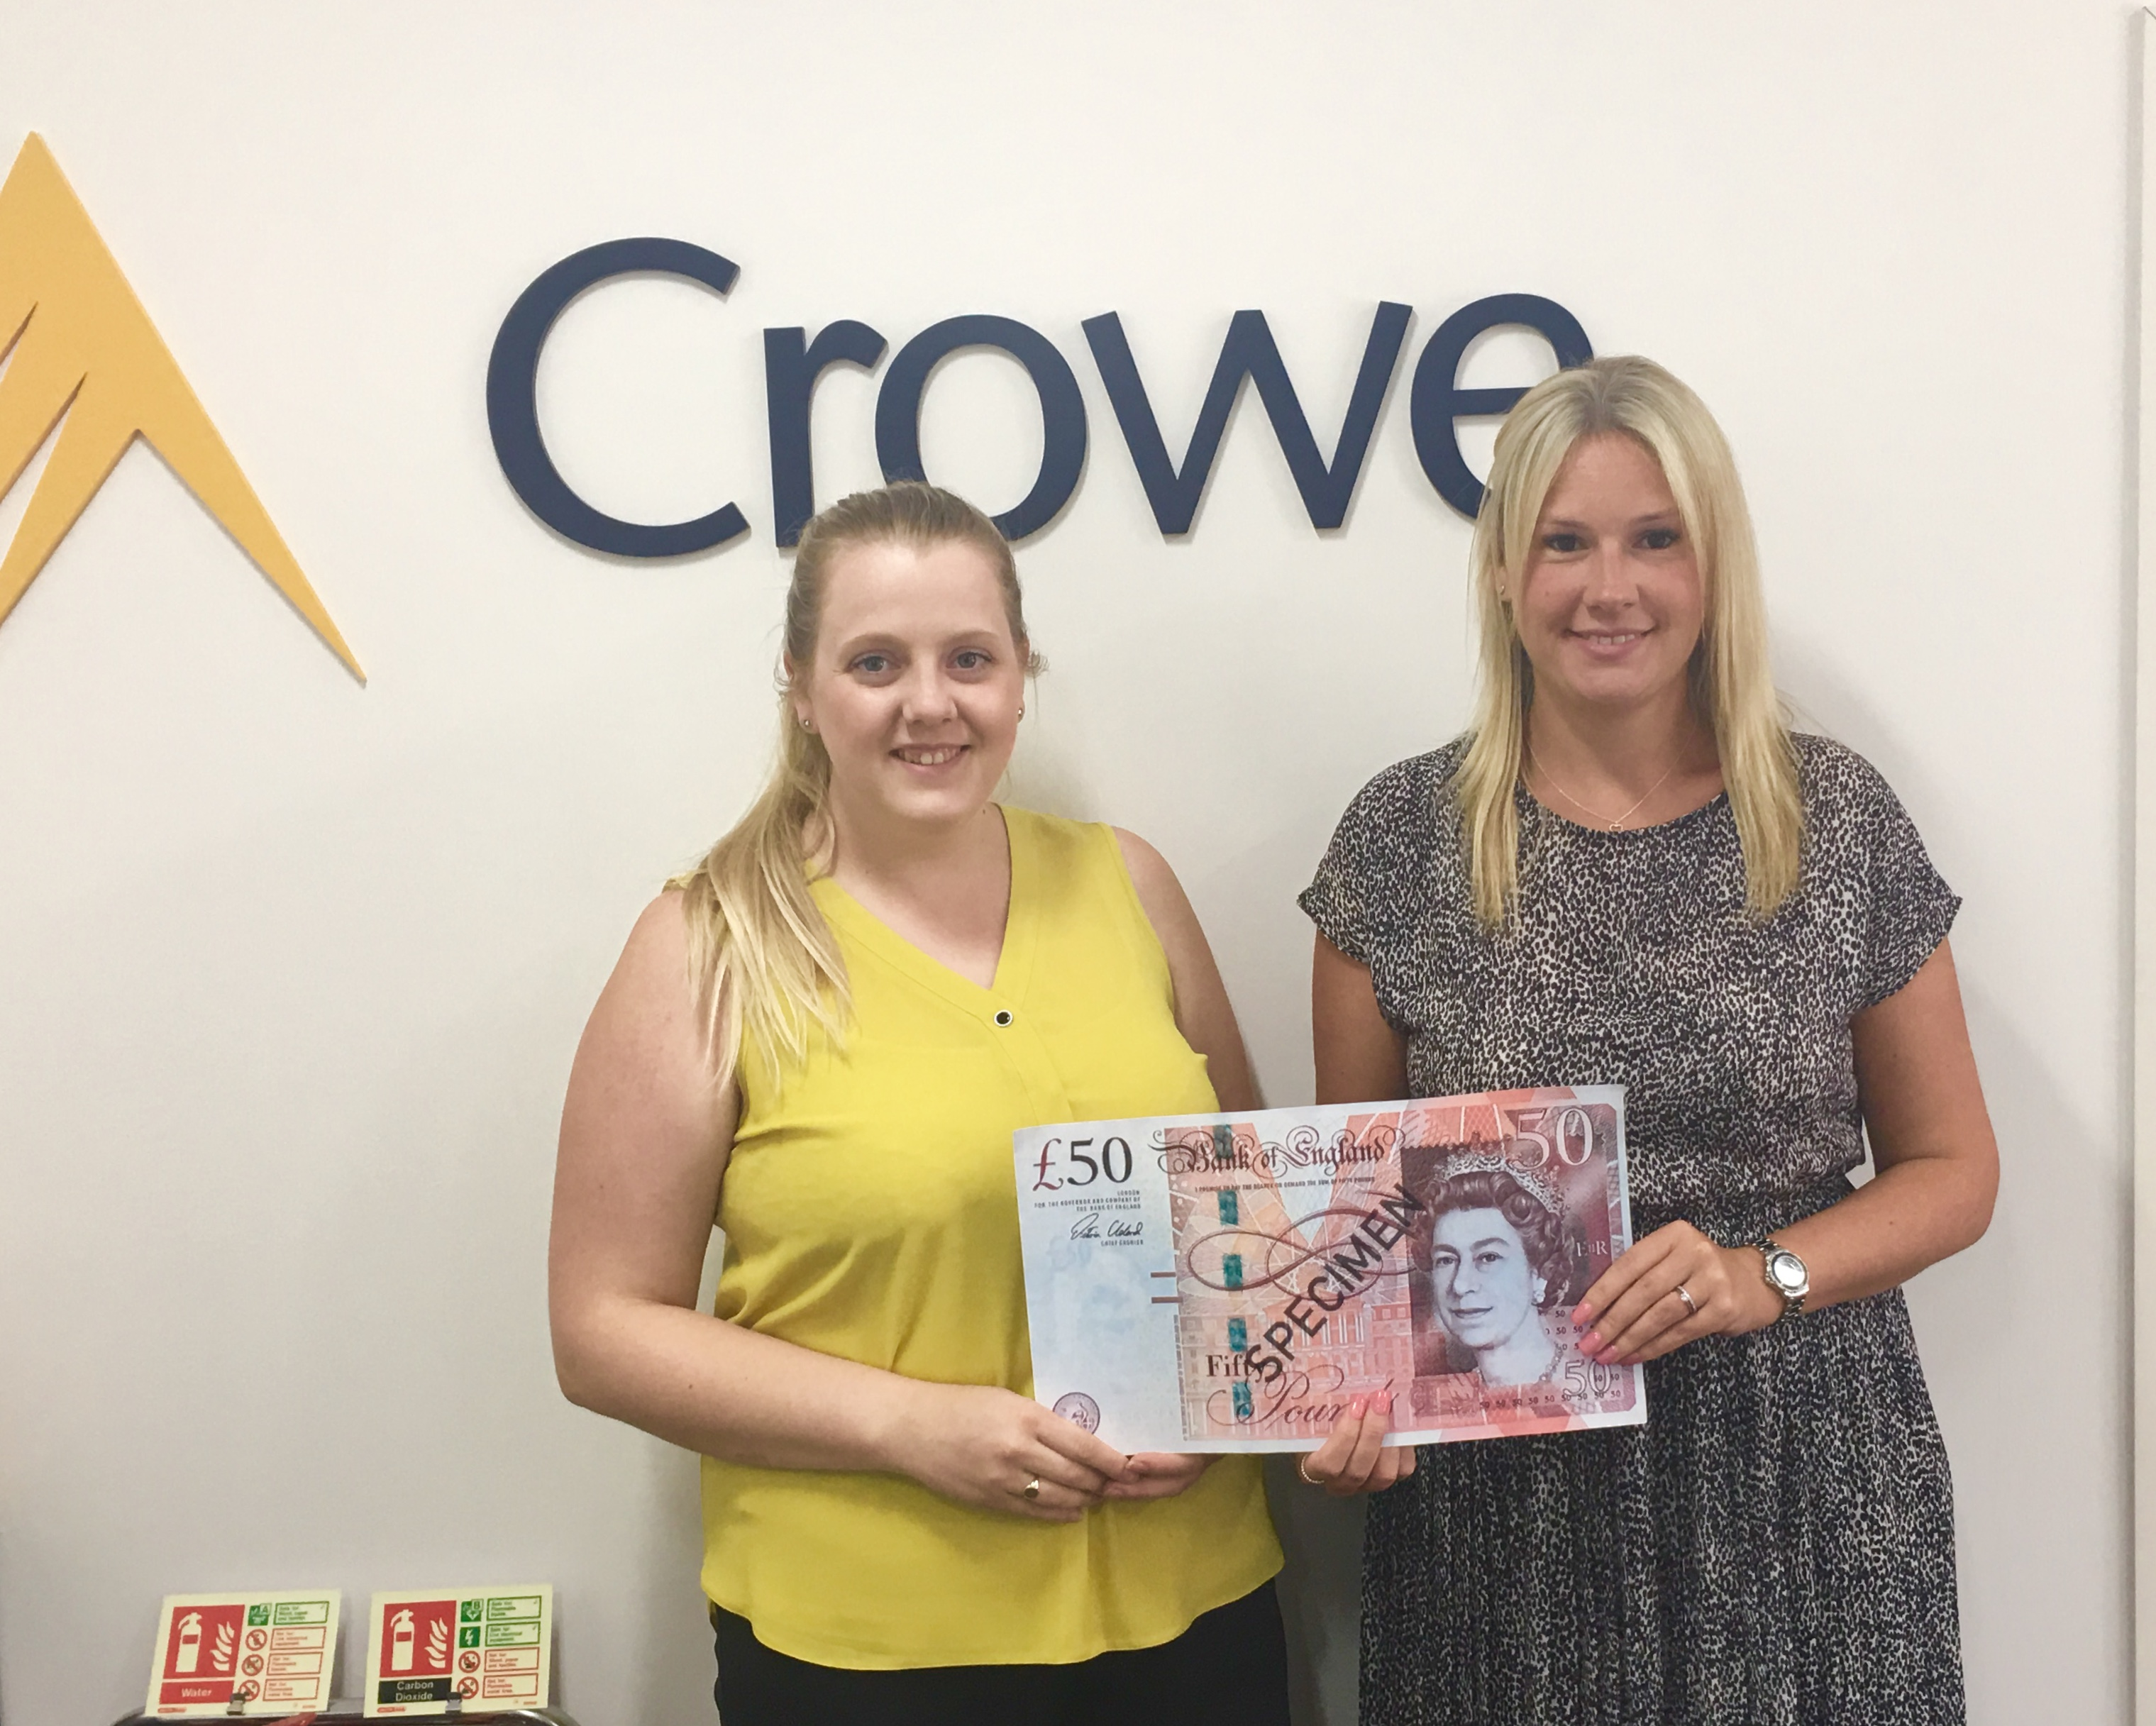 Crowe with their £50 starter fund.